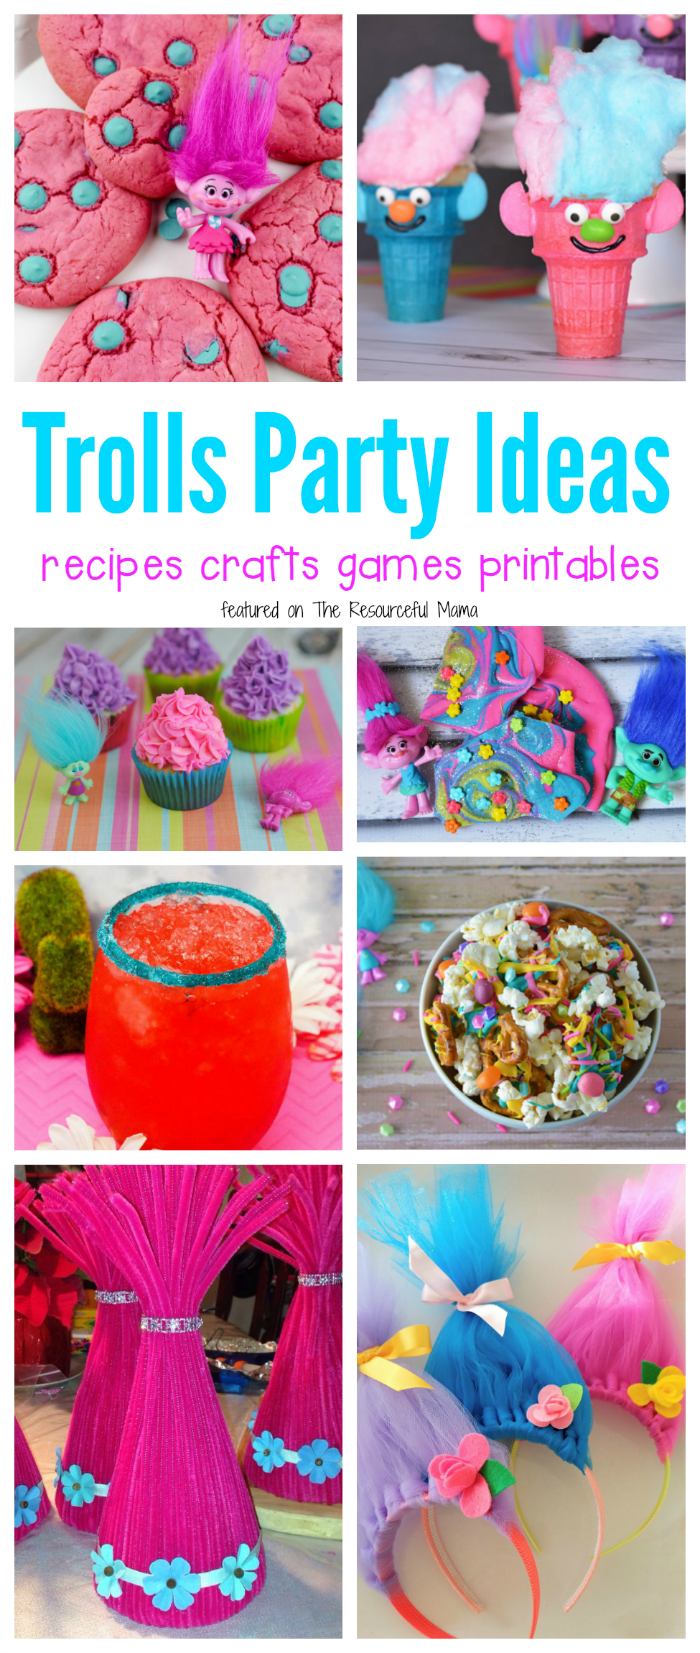 Lots of fun trolls party ideas including recipes crafts games and printables for your movie night or birthday also filled pinterest rh